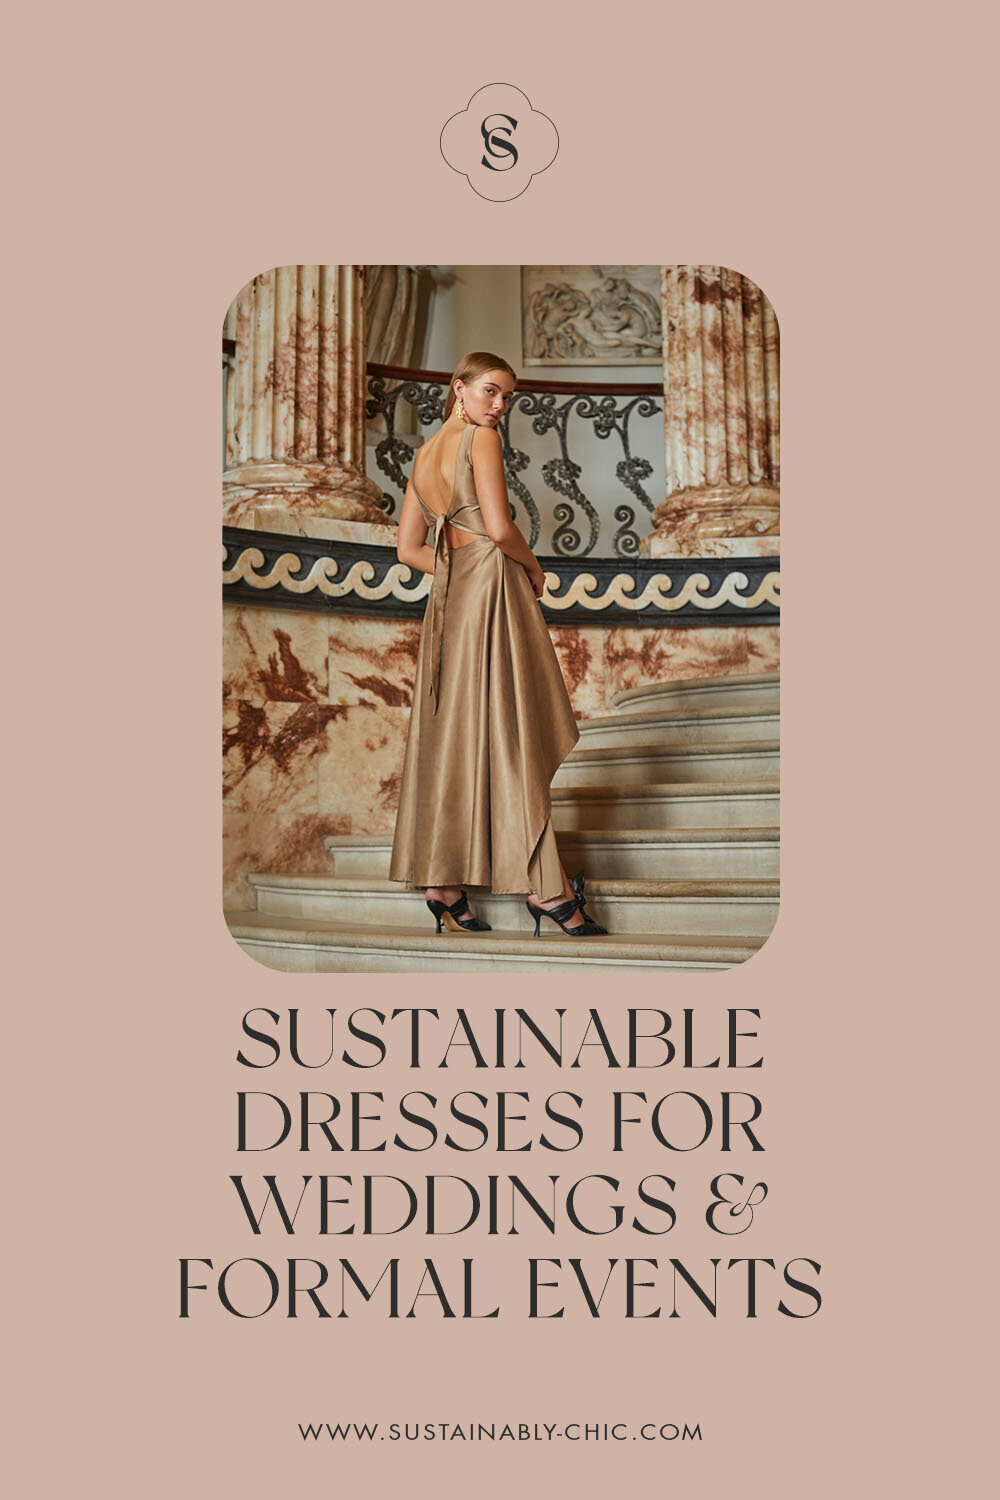 Sustainably Chic | Sustainable Fashion Blog | The Best Sustainable Dress for Weddings & Special Events.jpg